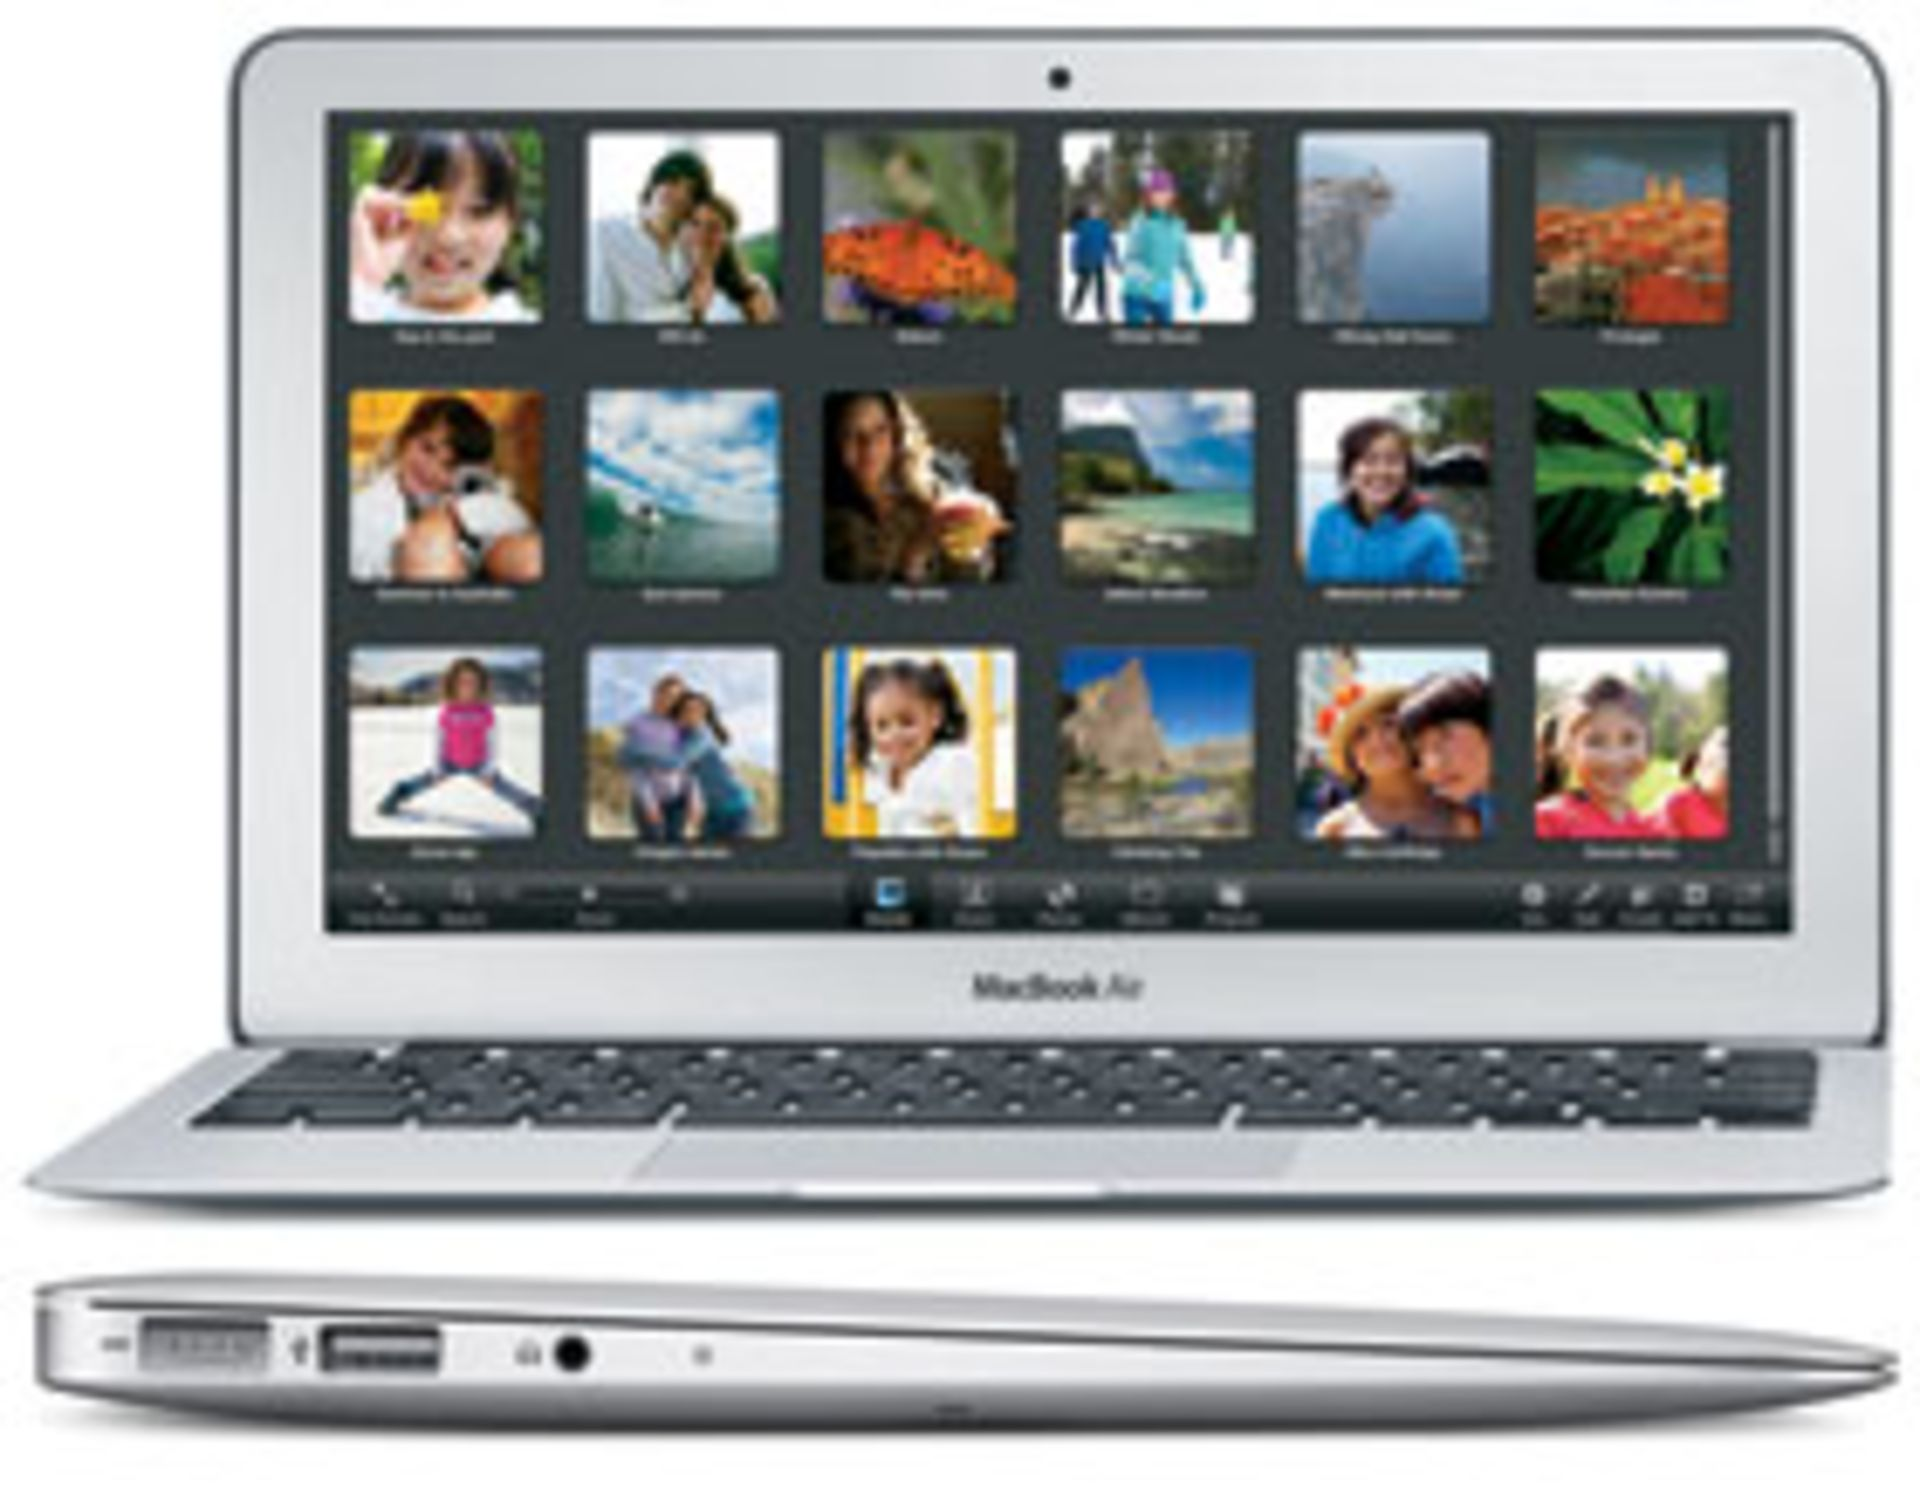 Lot 60025 - V Grade B Macbook Air 11.6 Inch Core 2 Duo - 64GB SSD - A1370 - Available Approx 7 Working Days